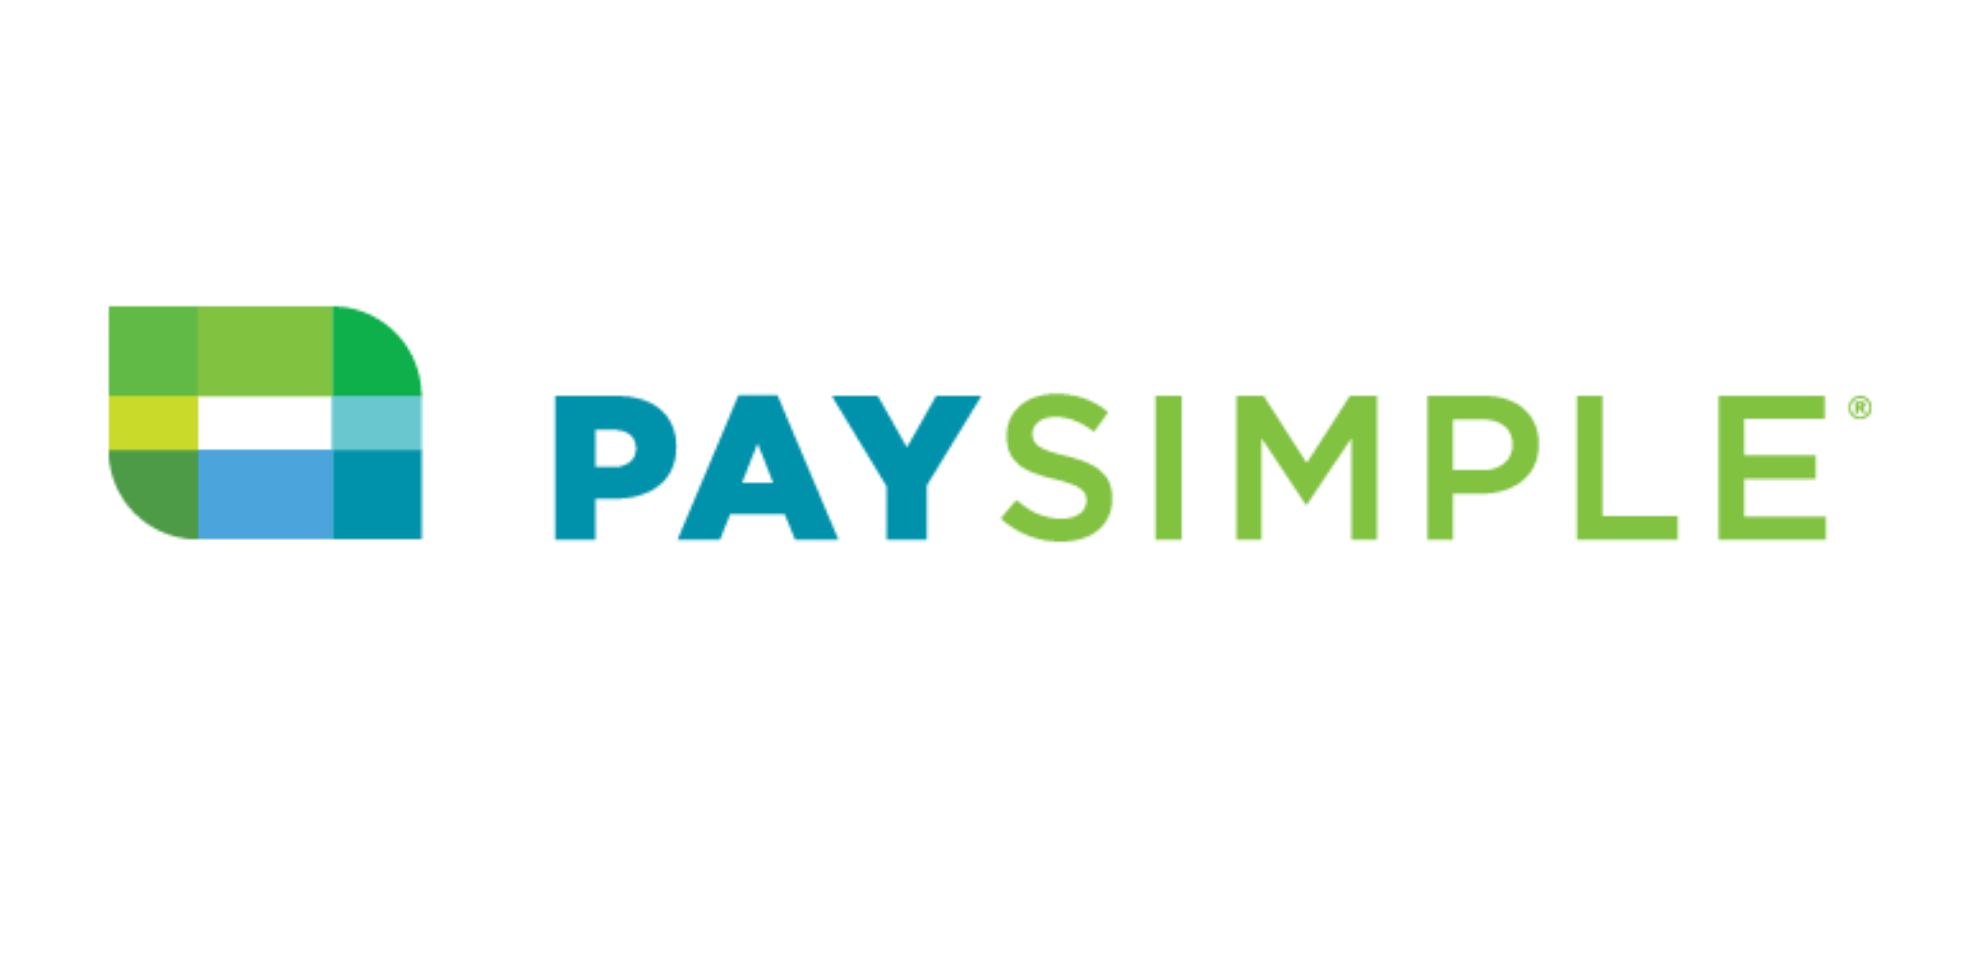 PaySimple Logo in blue and bright green